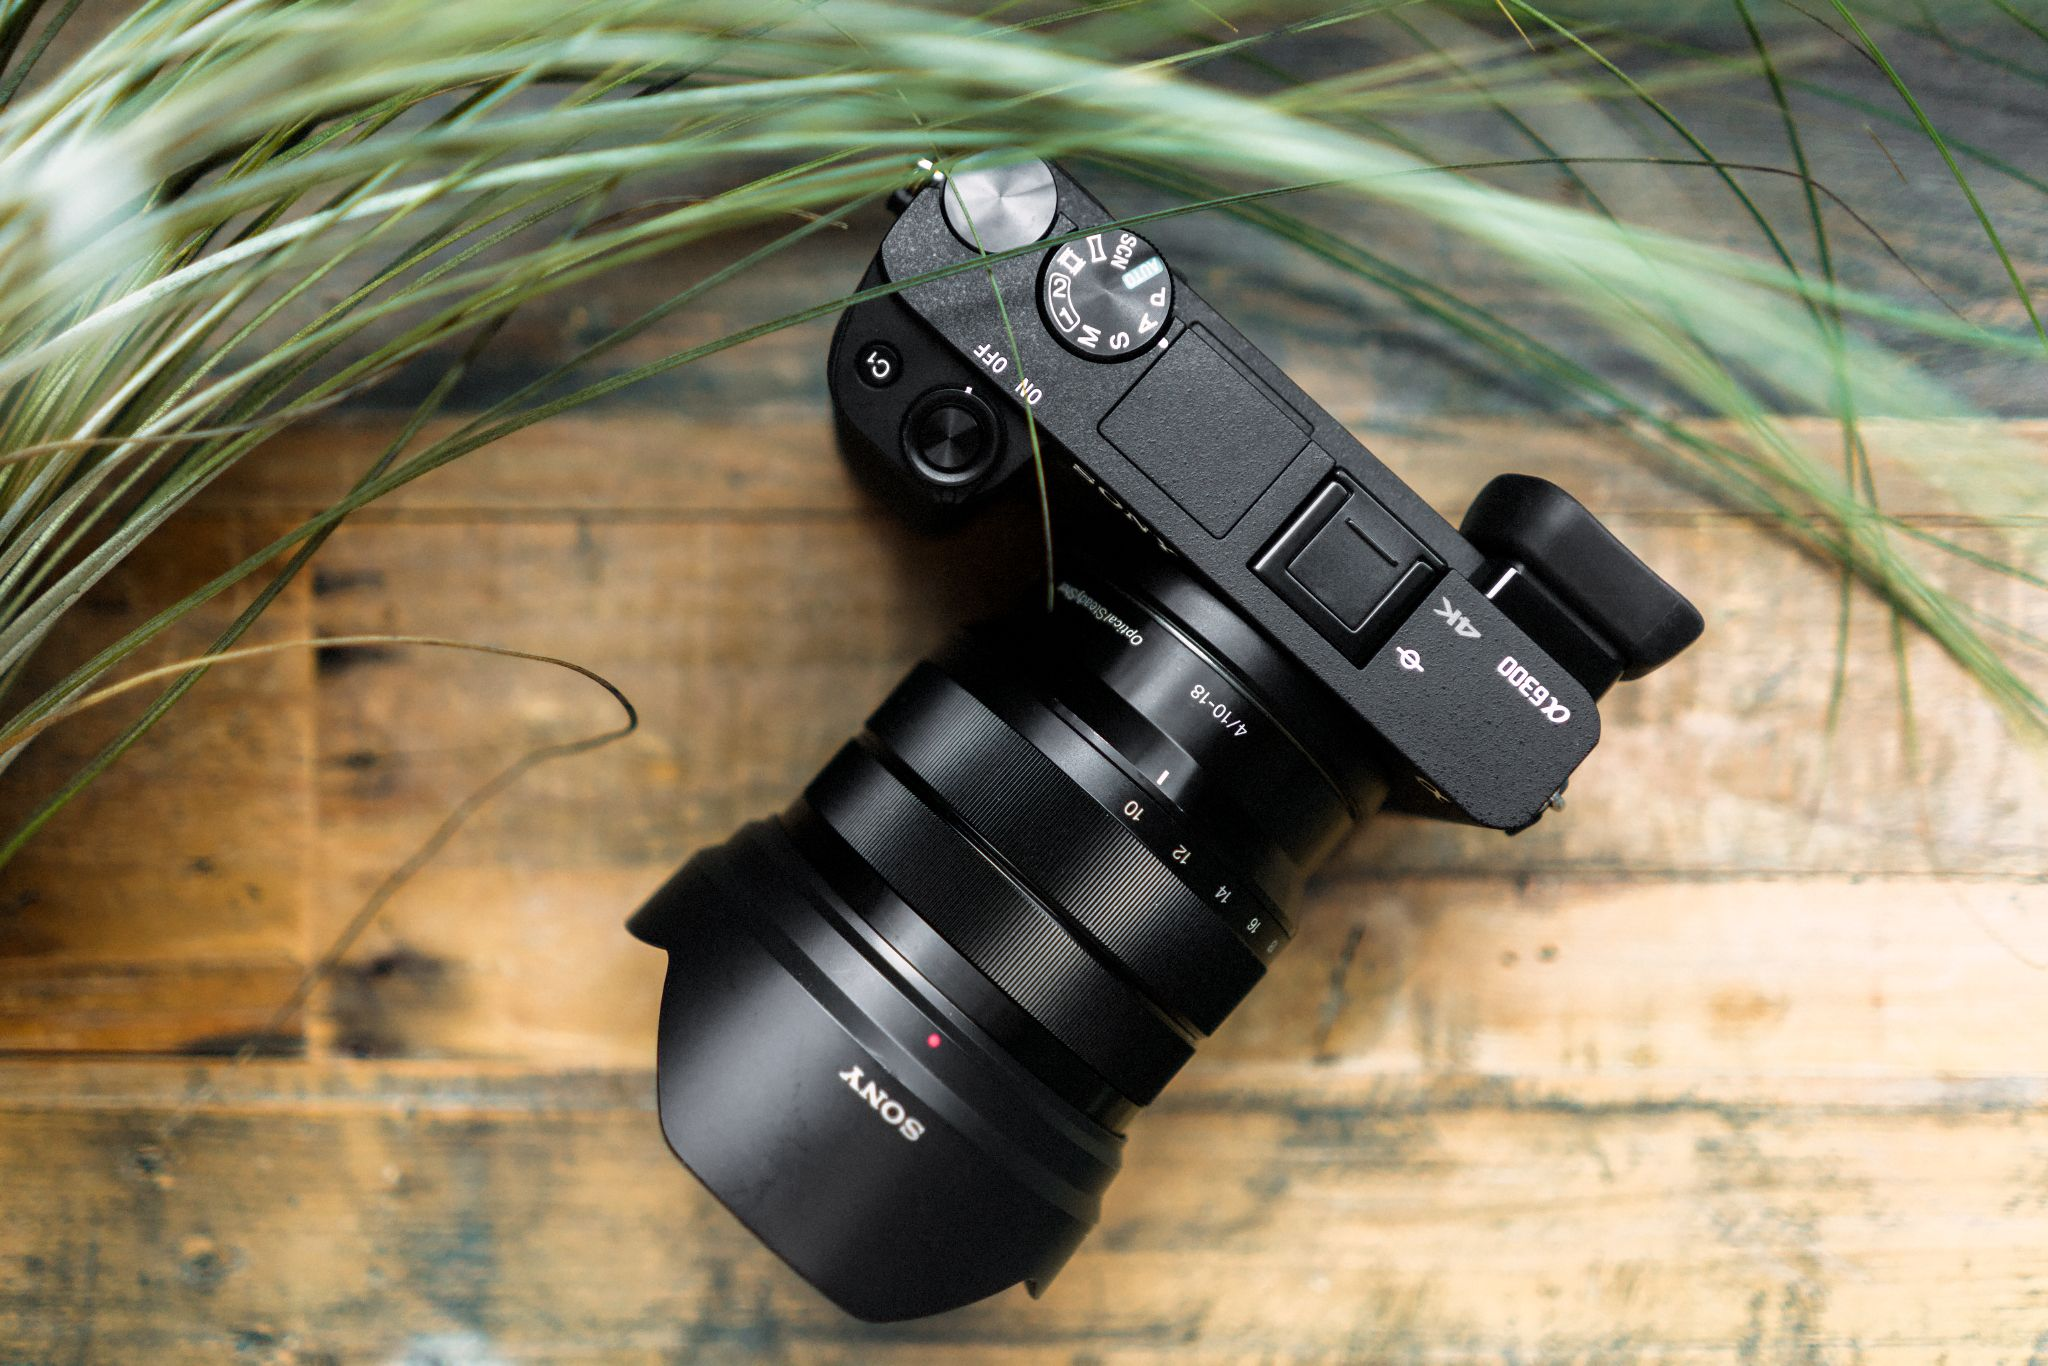 Sony A6300 Review Http Journal Hellomikee Com Sony A6300 Review Sonya6300 A6300 Review Sonya6300review Son Cool Things To Buy Sony Mirrorless Camera